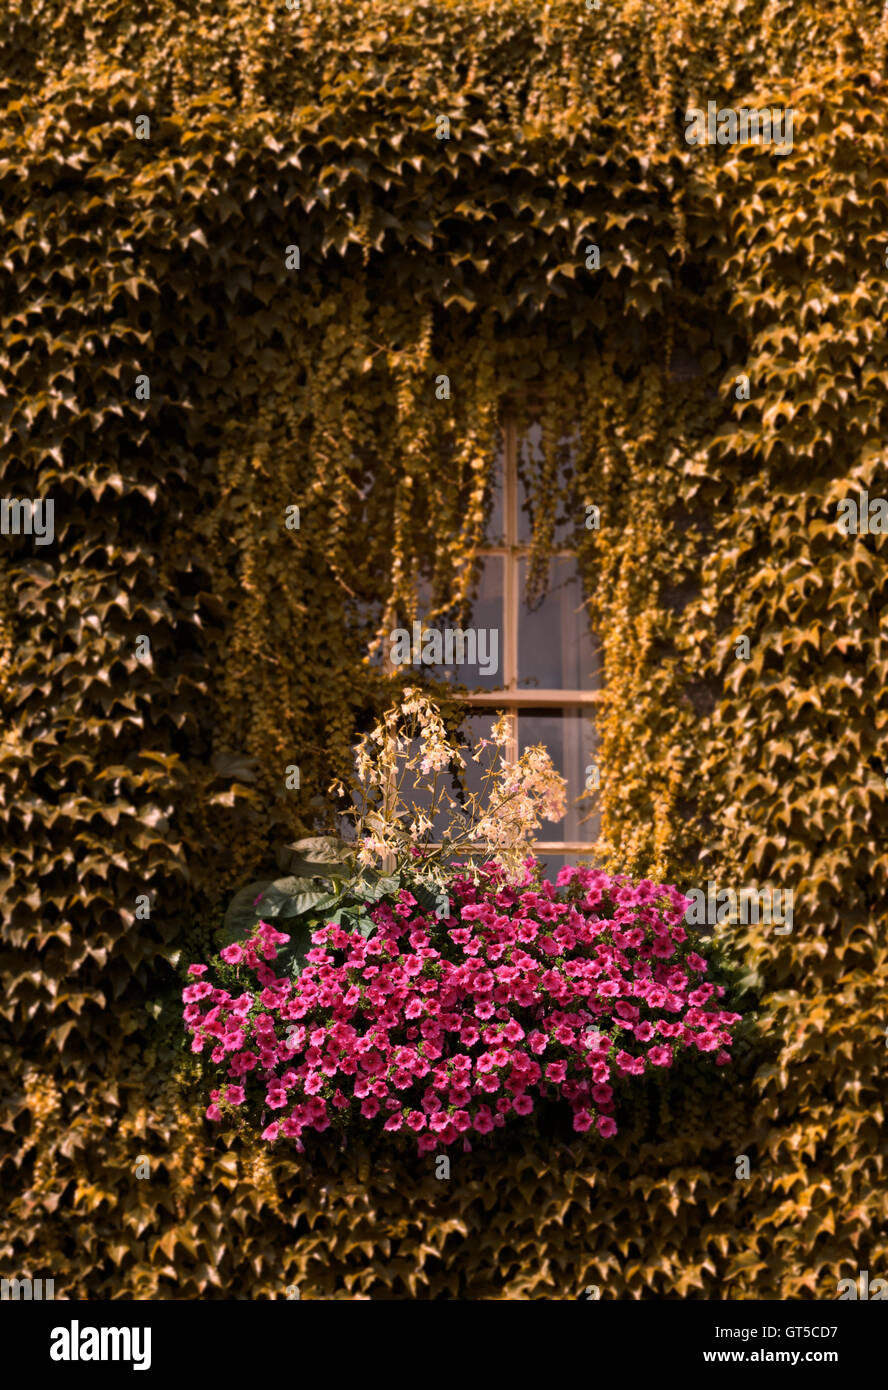 Ivy draped around in an arch over window box of pink flowers, ivy has been changed to a bronze colour effect. Unsharpened Stock Photo